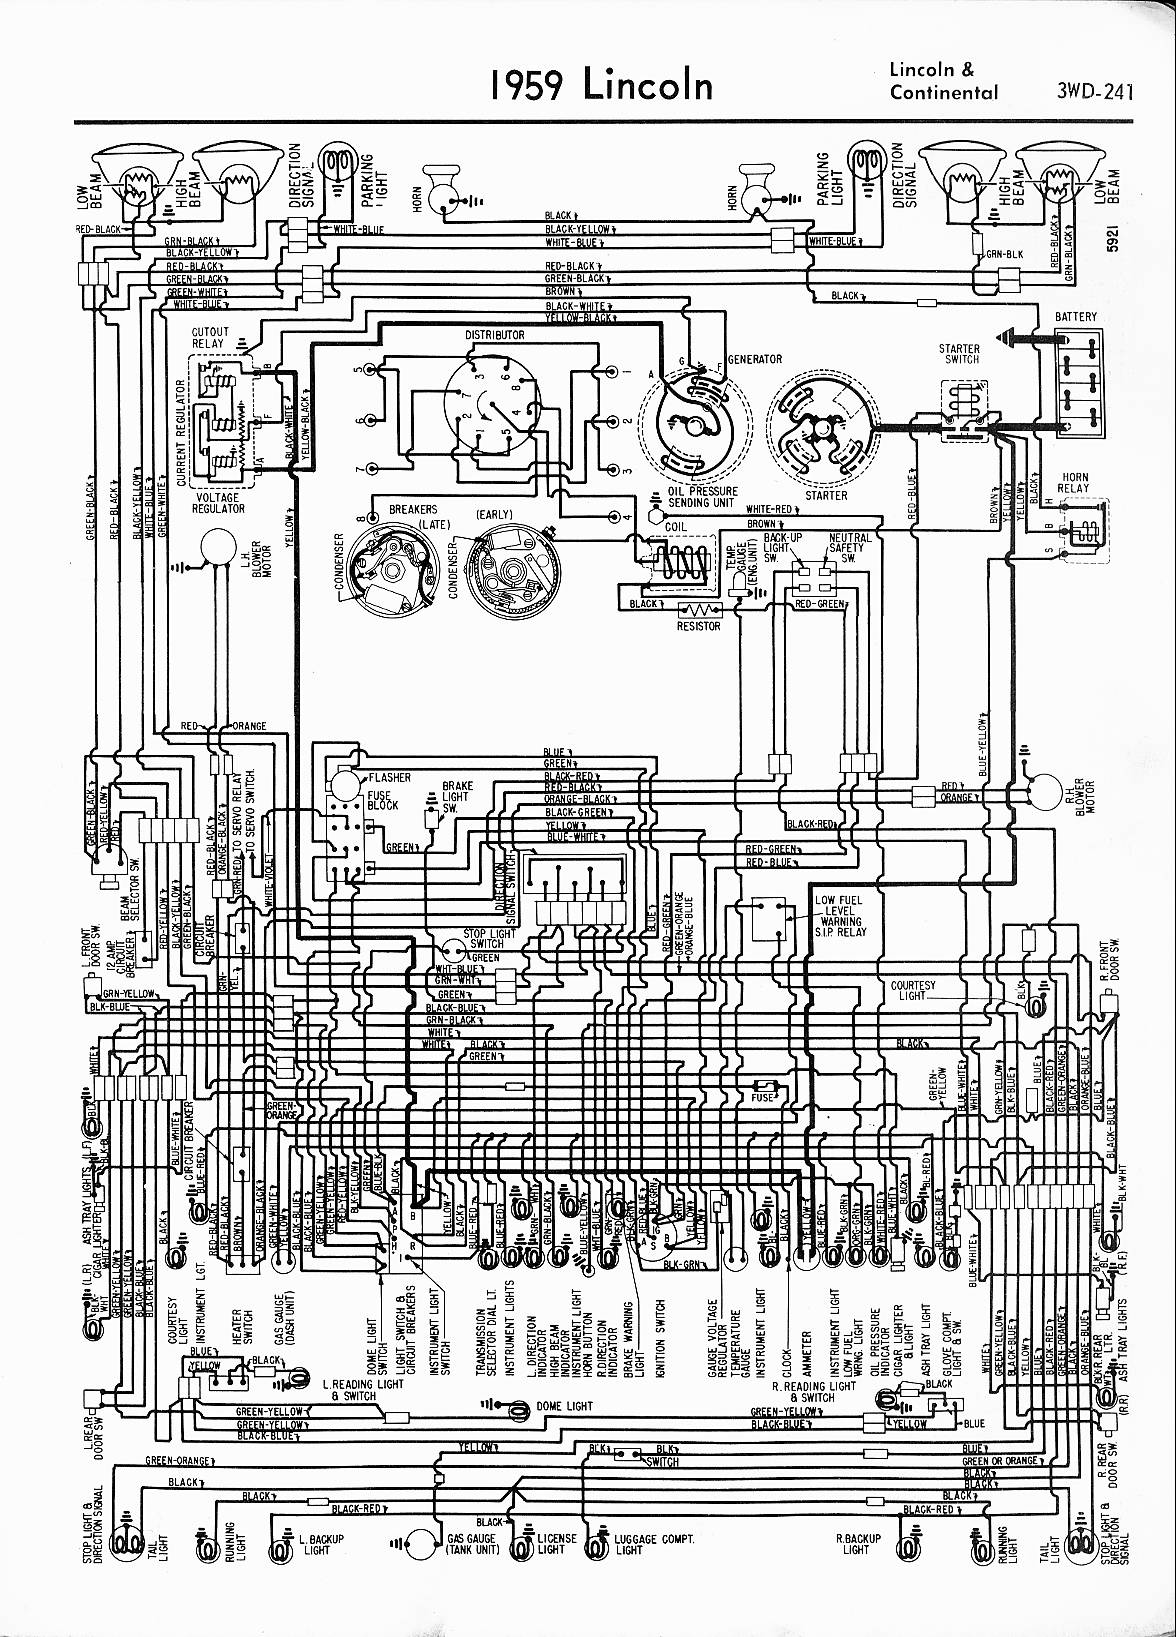 Lincoln Wiring Diagram - General Wiring Diagram on lincoln front suspension, lincoln heater core replacement, lincoln ls relay diagram, lincoln continental horn schematics and diagram, lincoln starting problems, lincoln parts diagrams, lincoln ls wire harness diagram, lincoln brakes, 2000 lincoln ls diagrams, lincoln transmission diagrams, 92 lincoln air suspension diagrams,